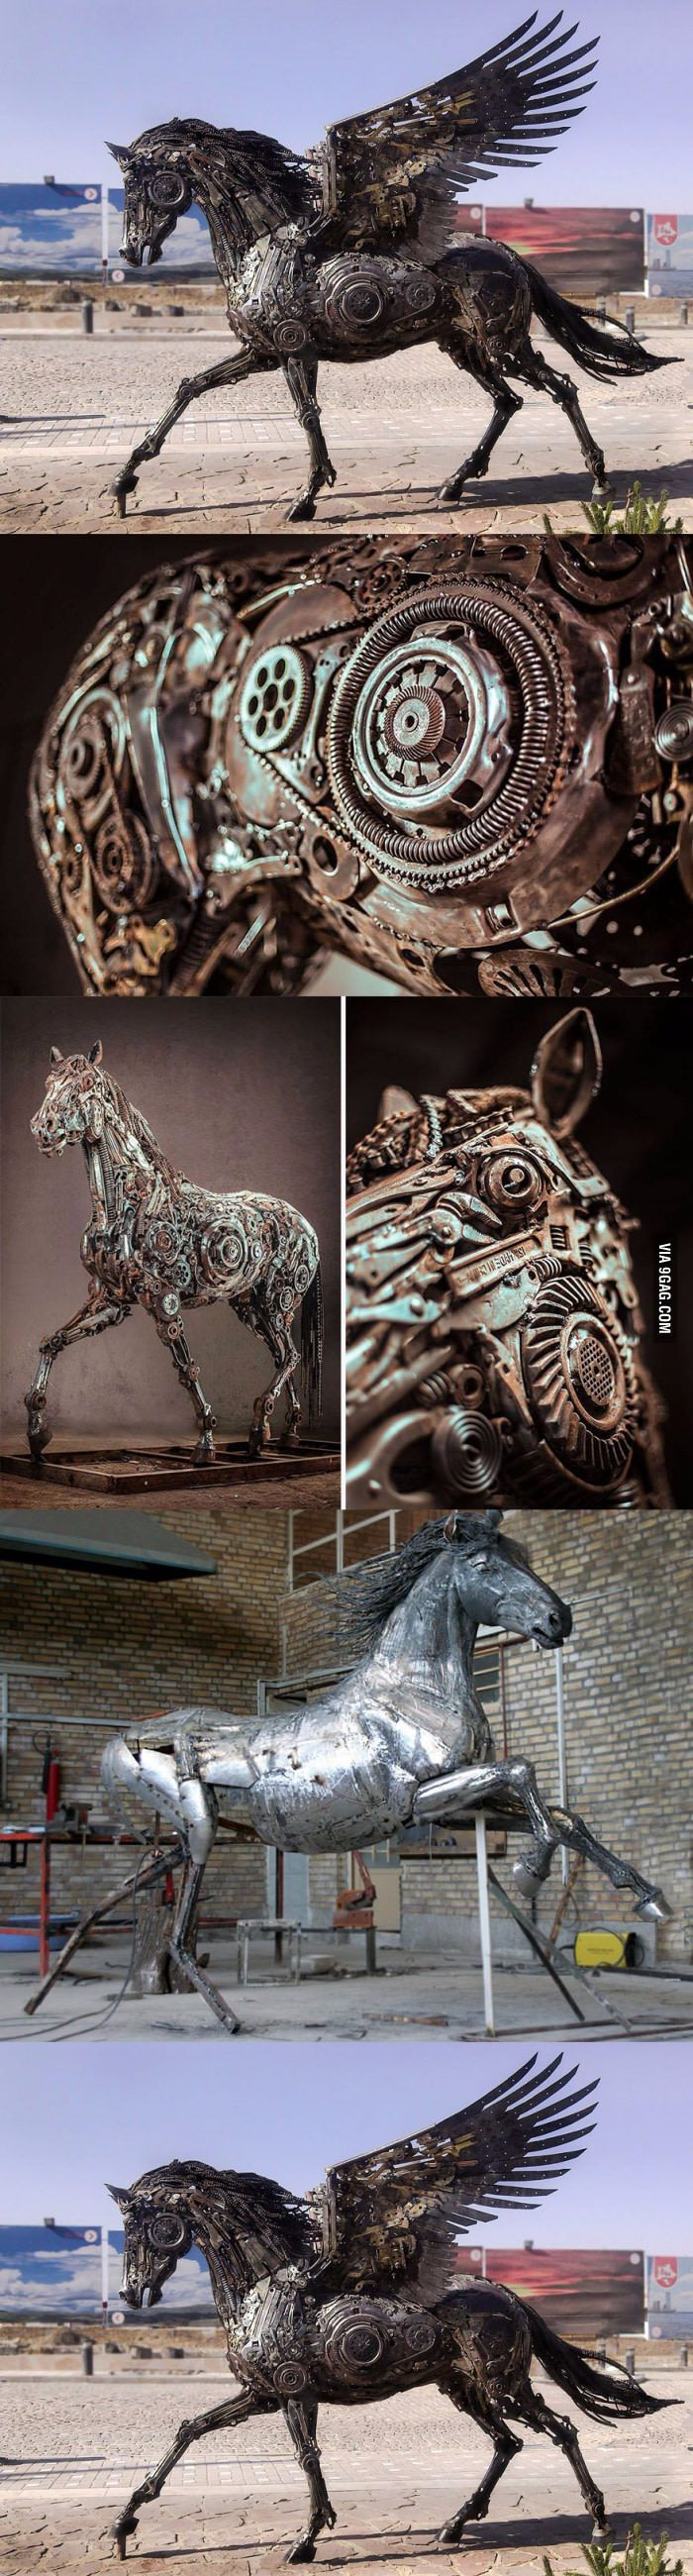 Steampunk Horse made from scrap metal